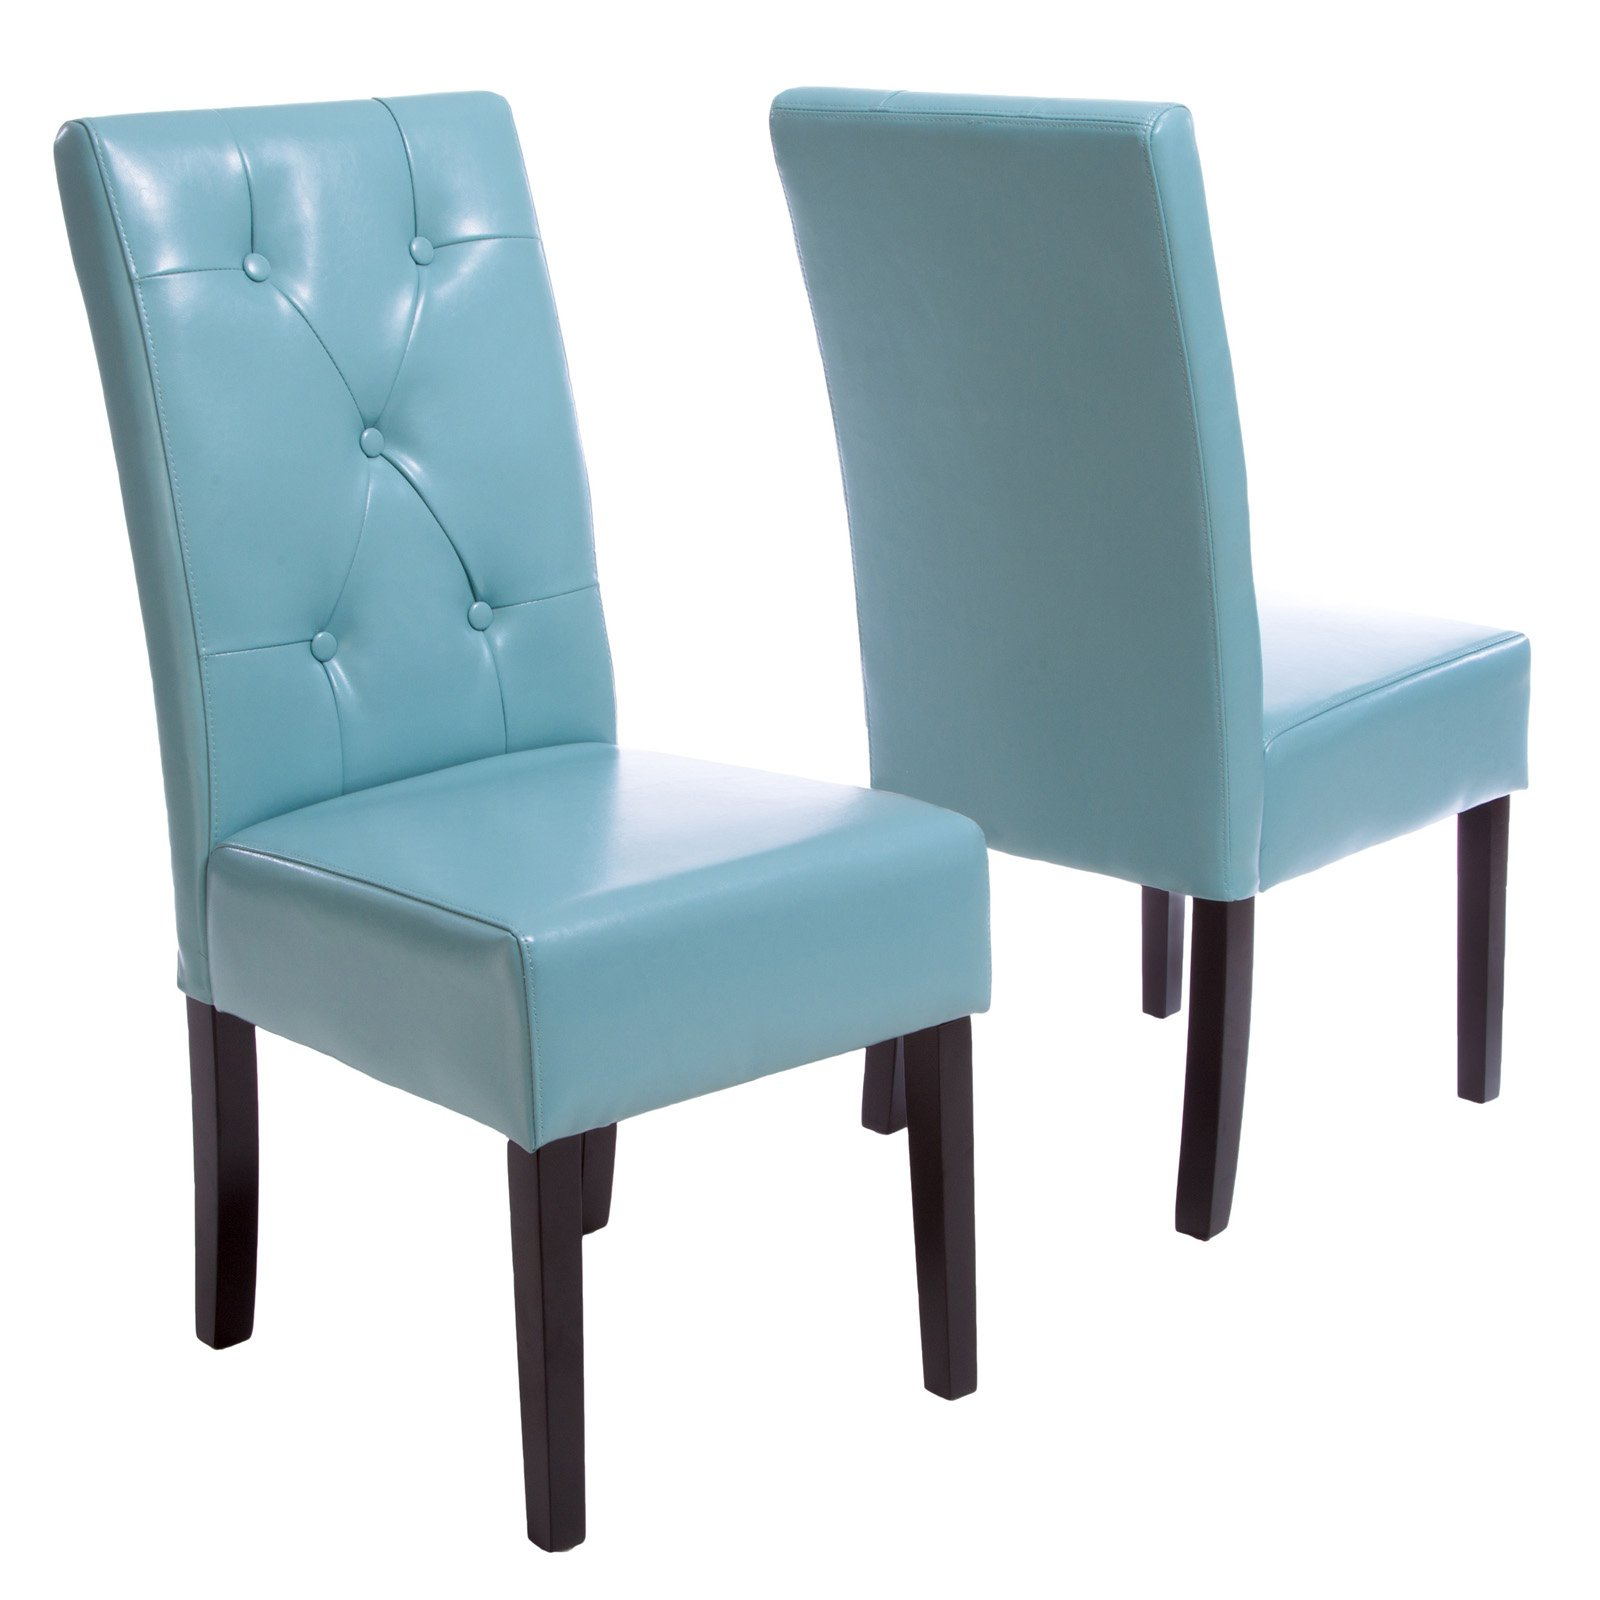 Taylor Bonded Leather Dining Chair - Set of 2